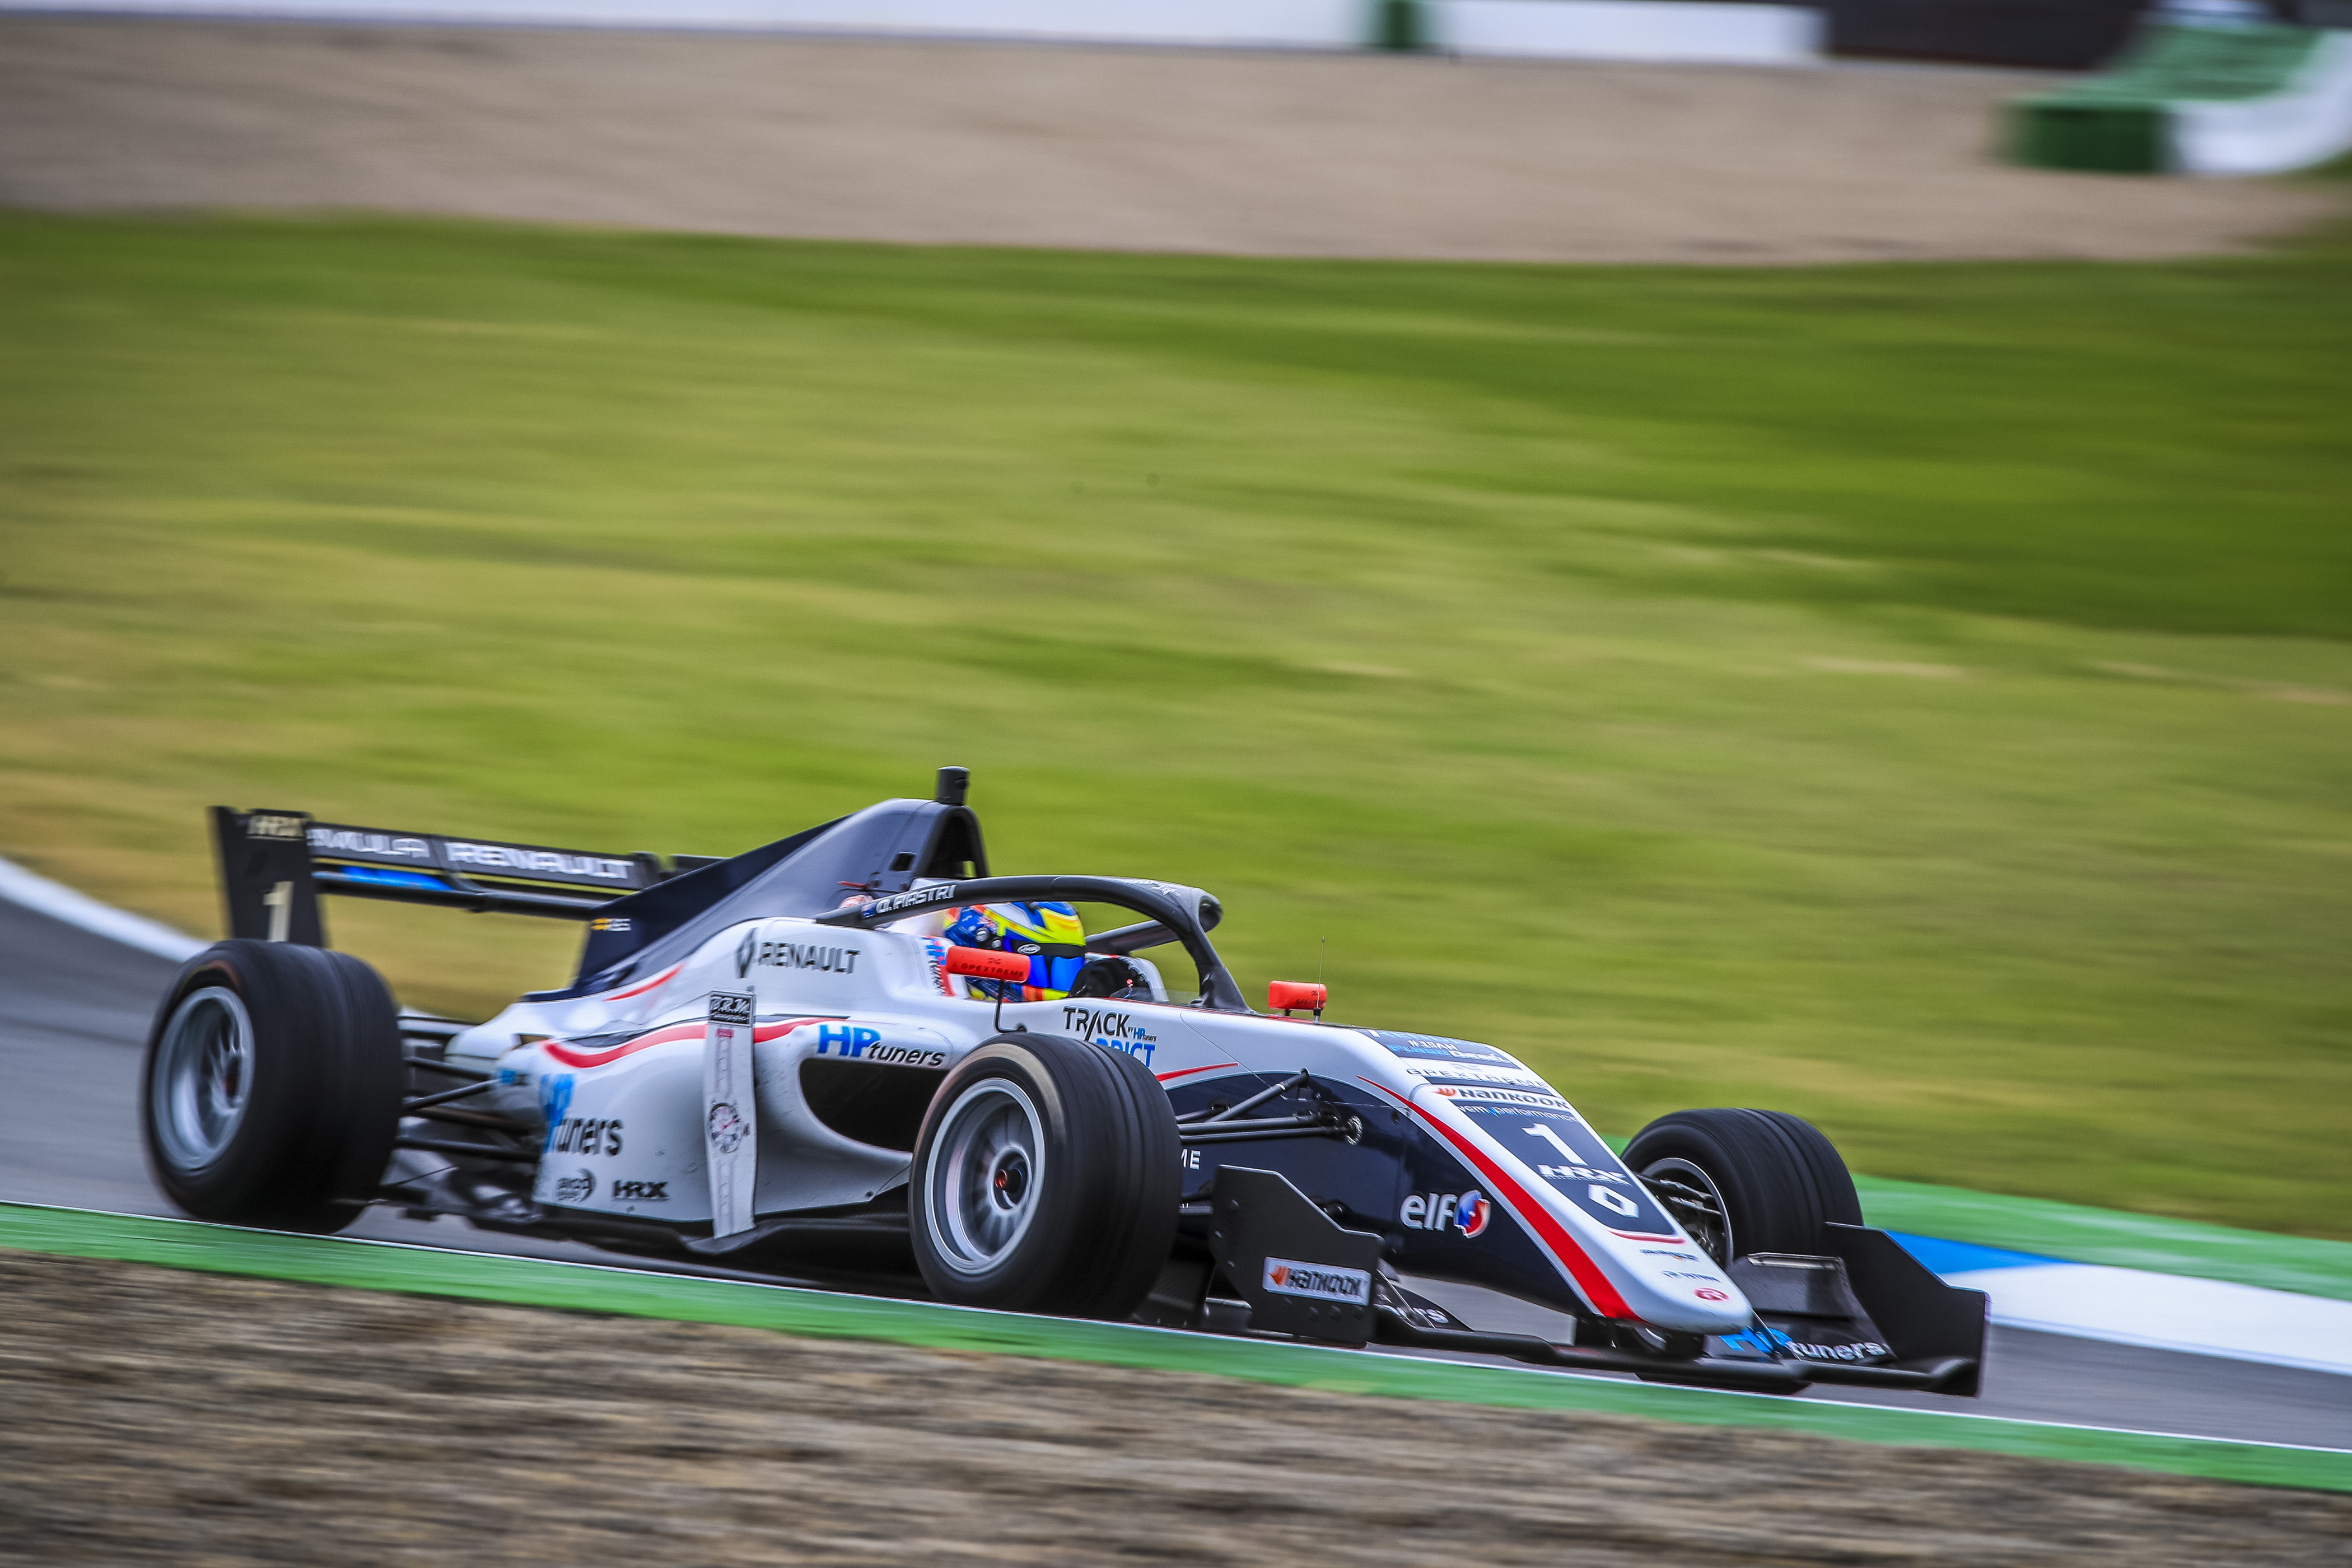 WORLD WRAP: Piastri one round from Formula Renault title